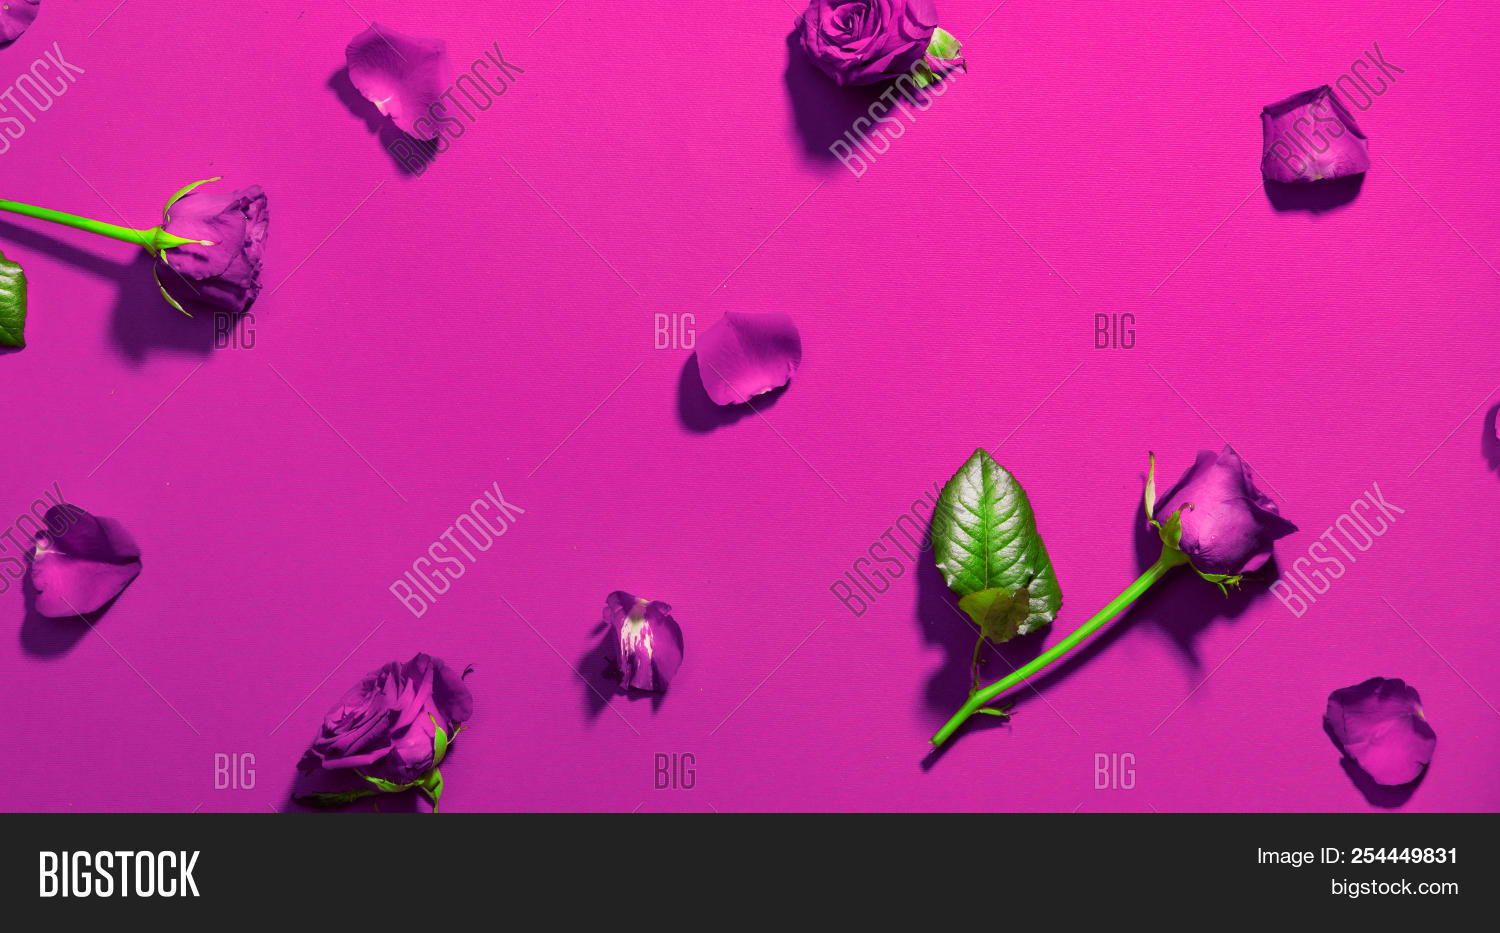 Beautiful purple color image photo free trial bigstock beautiful purple color roses backdrop beauty holiday rose flowers with leaves and petals flatlay izmirmasajfo